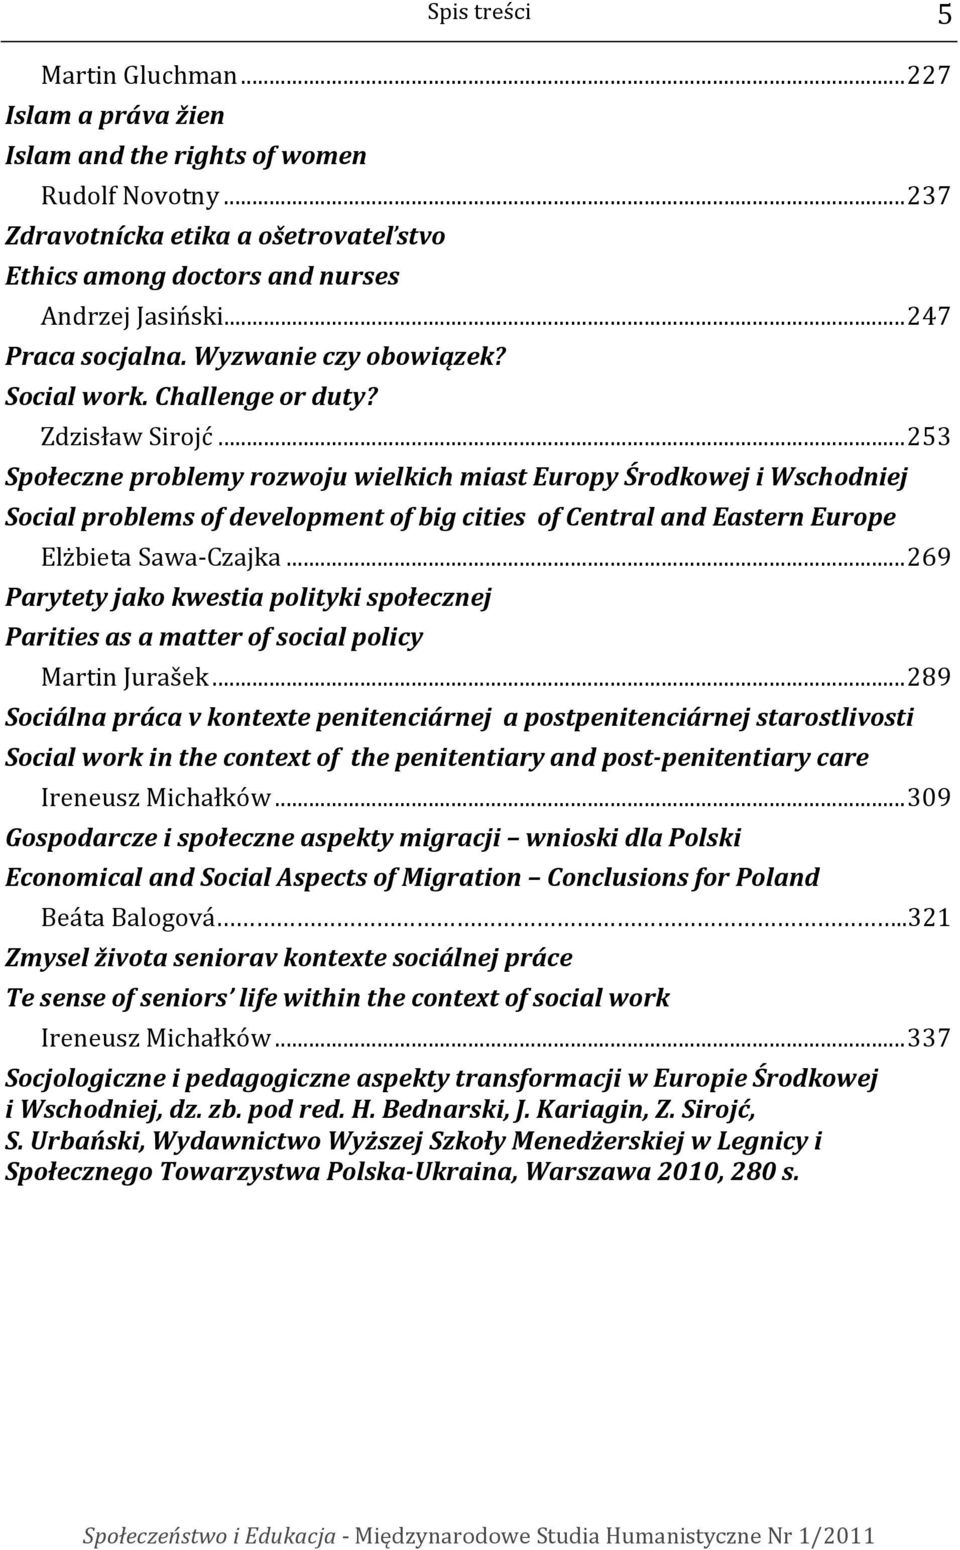 ..253 Społeczne problemy rozwoju wielkich miast Europy Środkowej i Wschodniej Social problems of development of big cities of Central and Eastern Europe Elżbieta Sawa-Czajka.